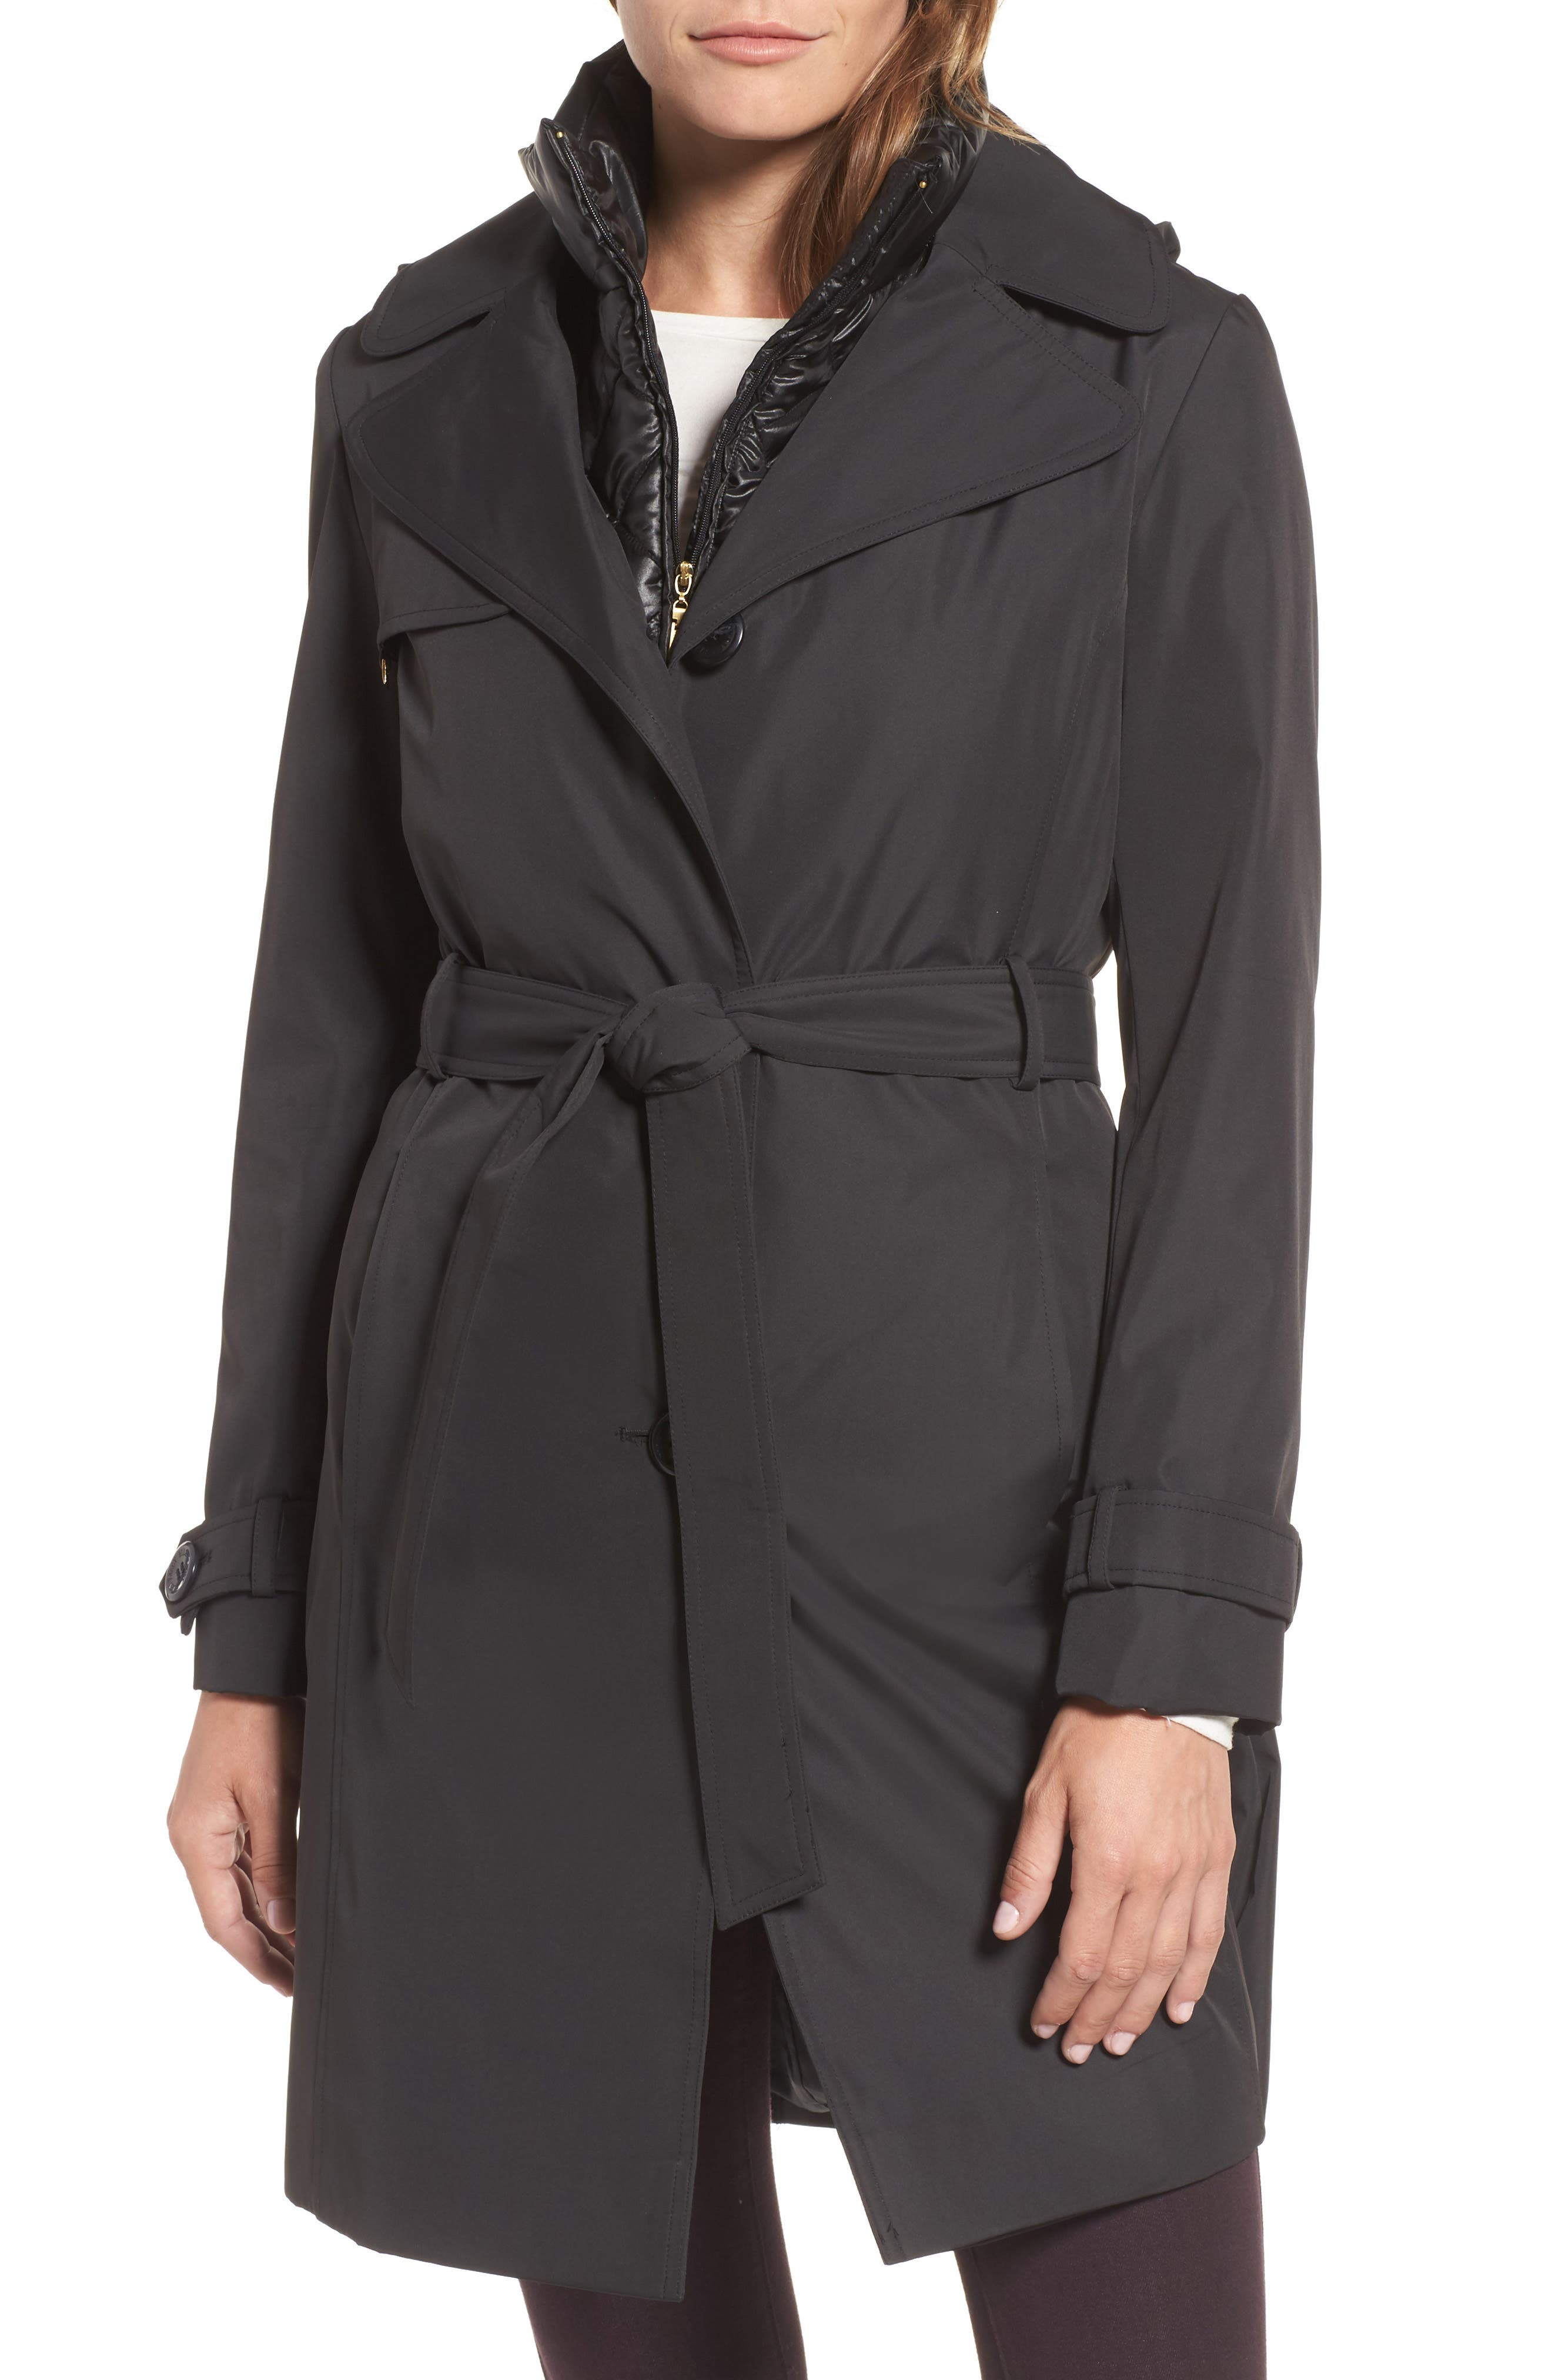 Ellen Tracy Waterproof Trench Coat with Removable Vest